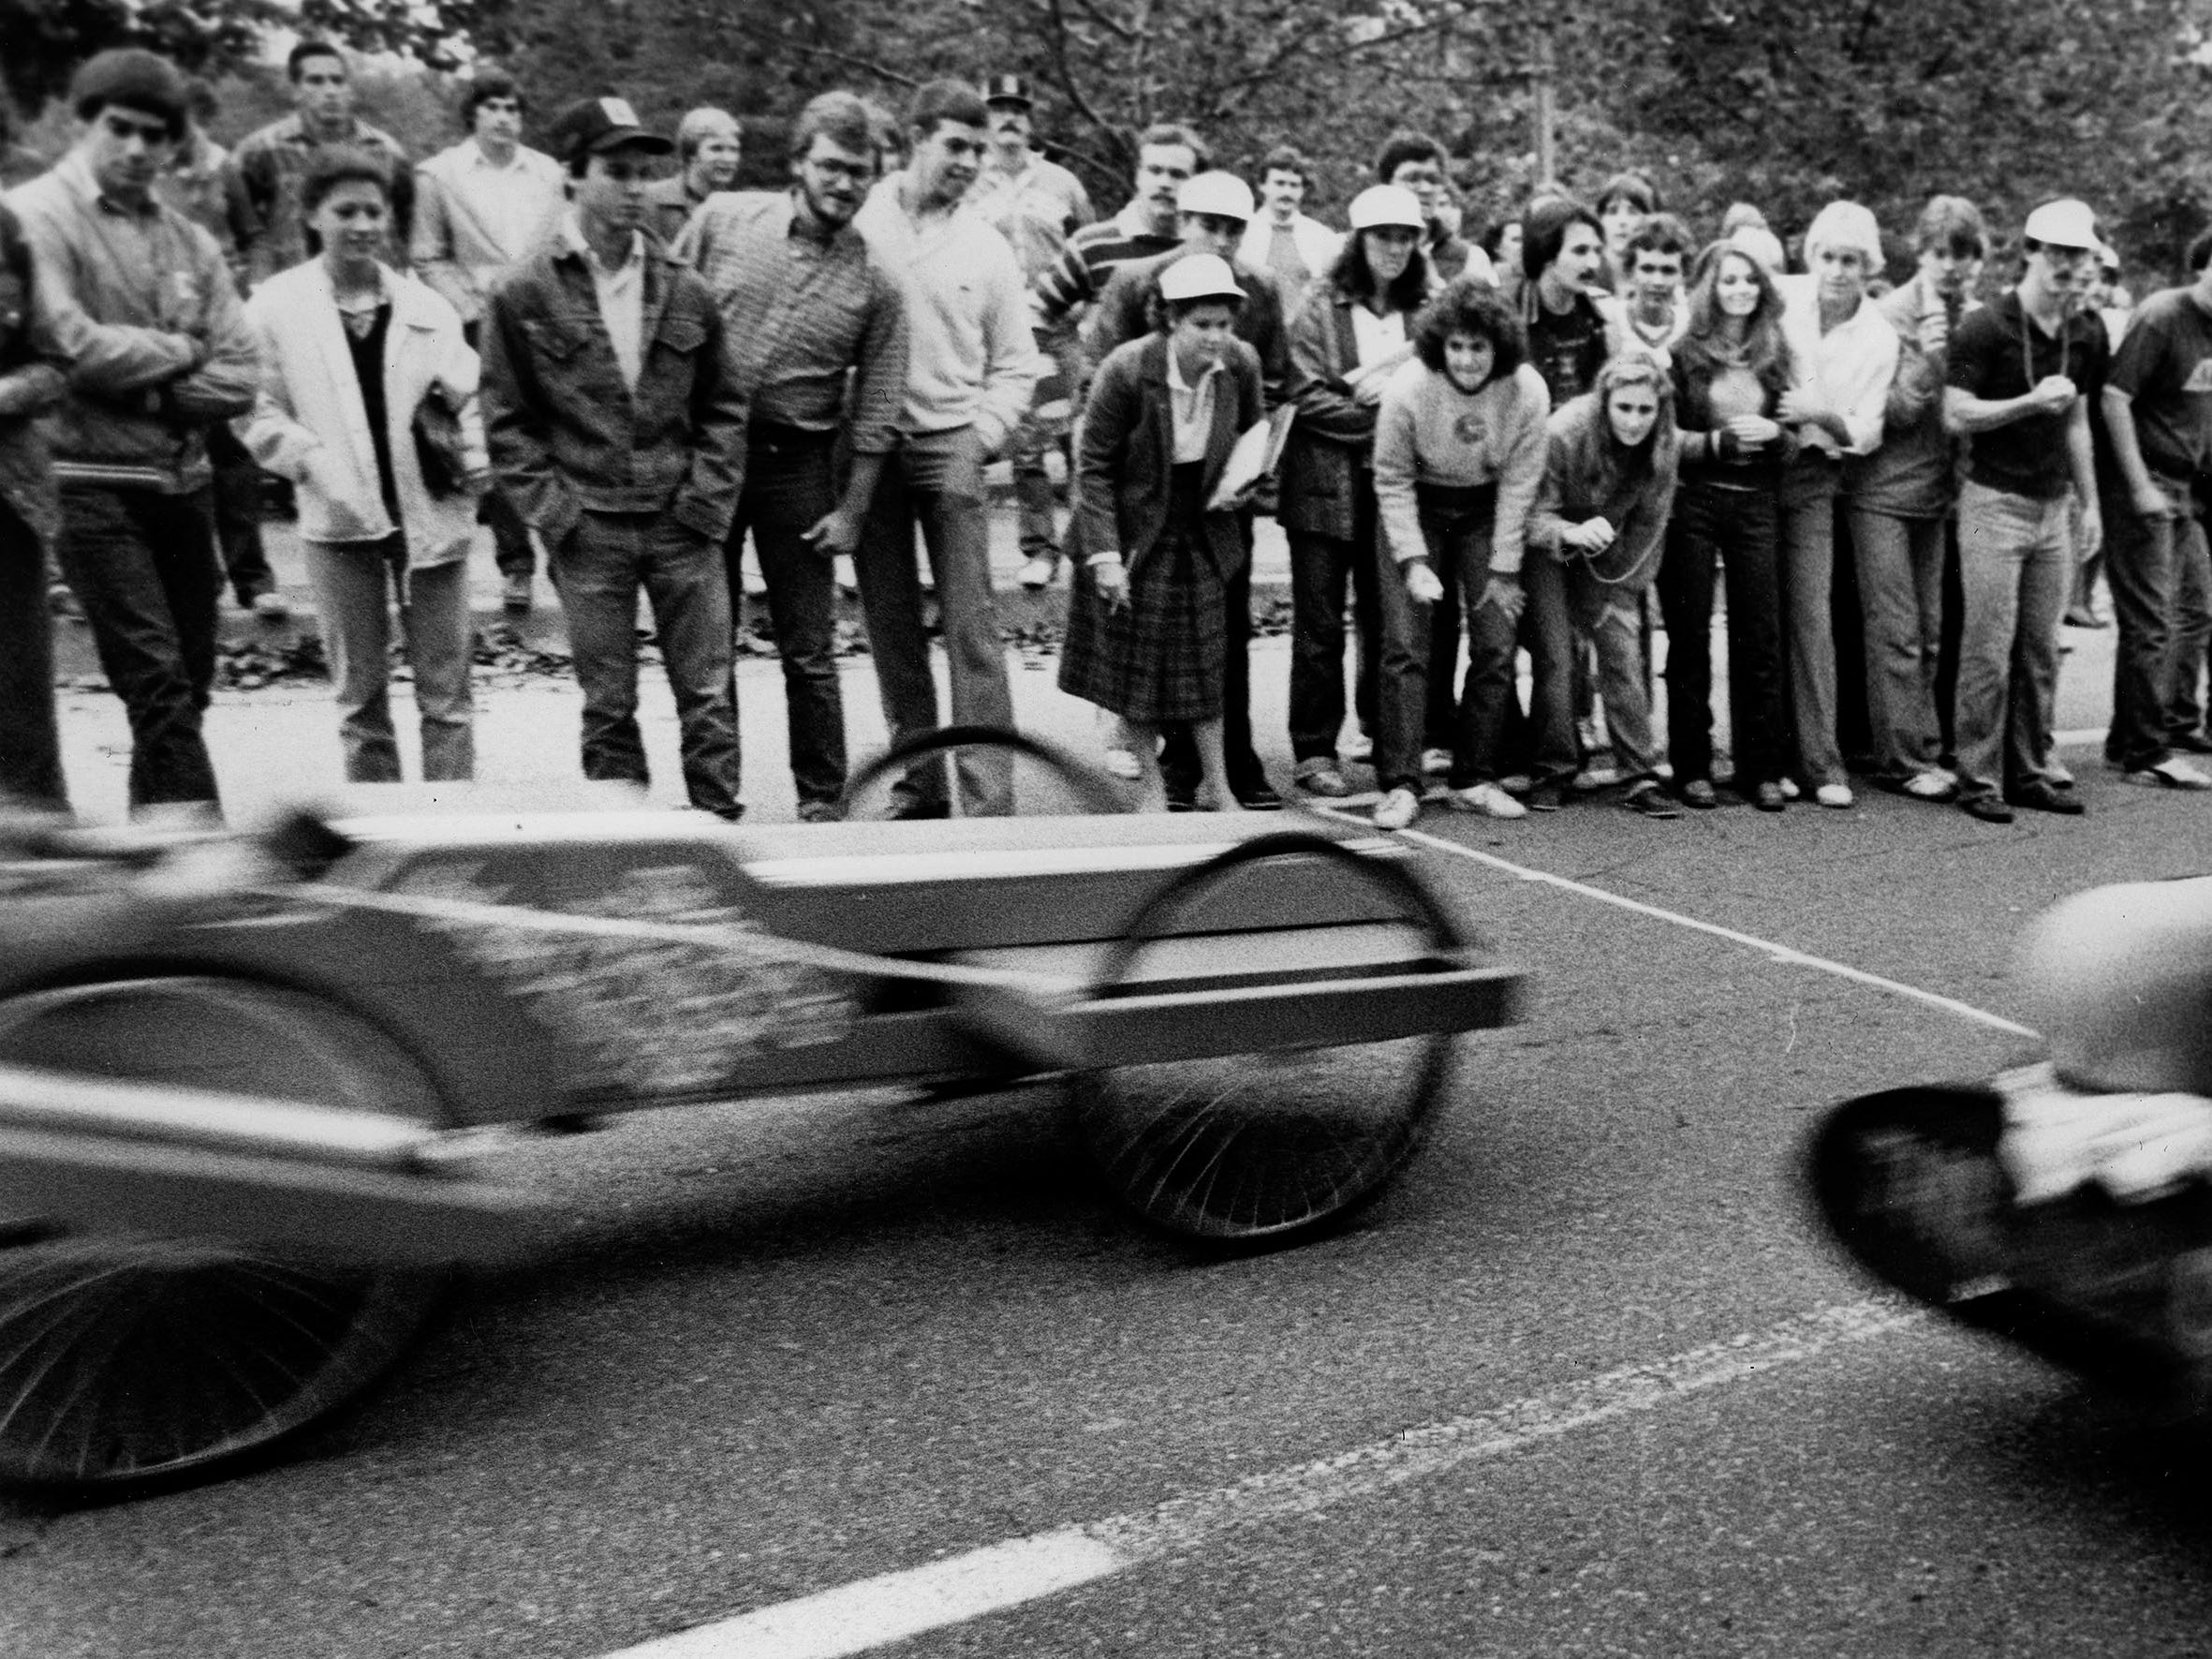 """Steve Cox in """"The Cob"""" crosss the finish line in a blur during homecoming activities at UTK Oct. 29, 1980."""